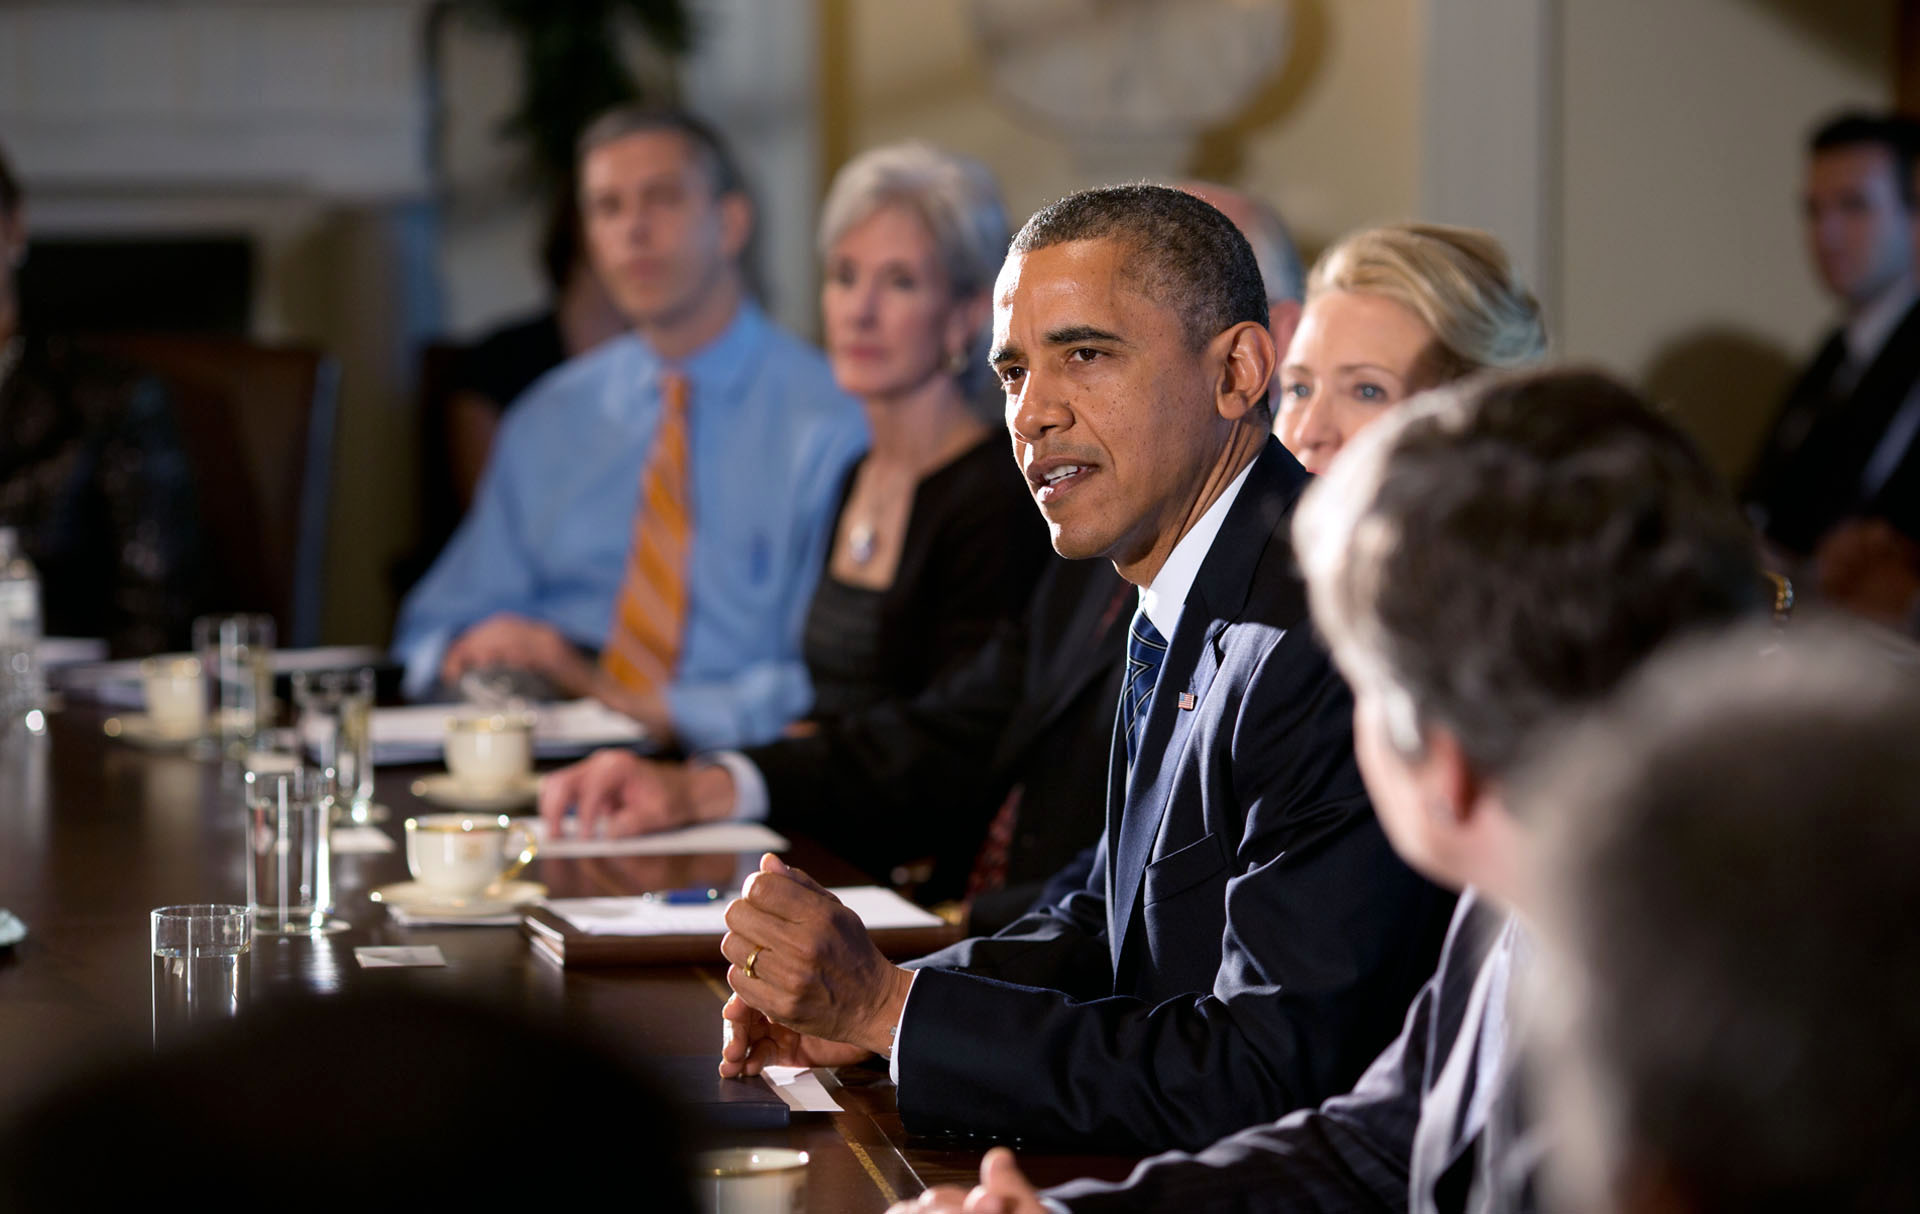 President Obama Holds a Cabinet Meeting | whitehouse.gov